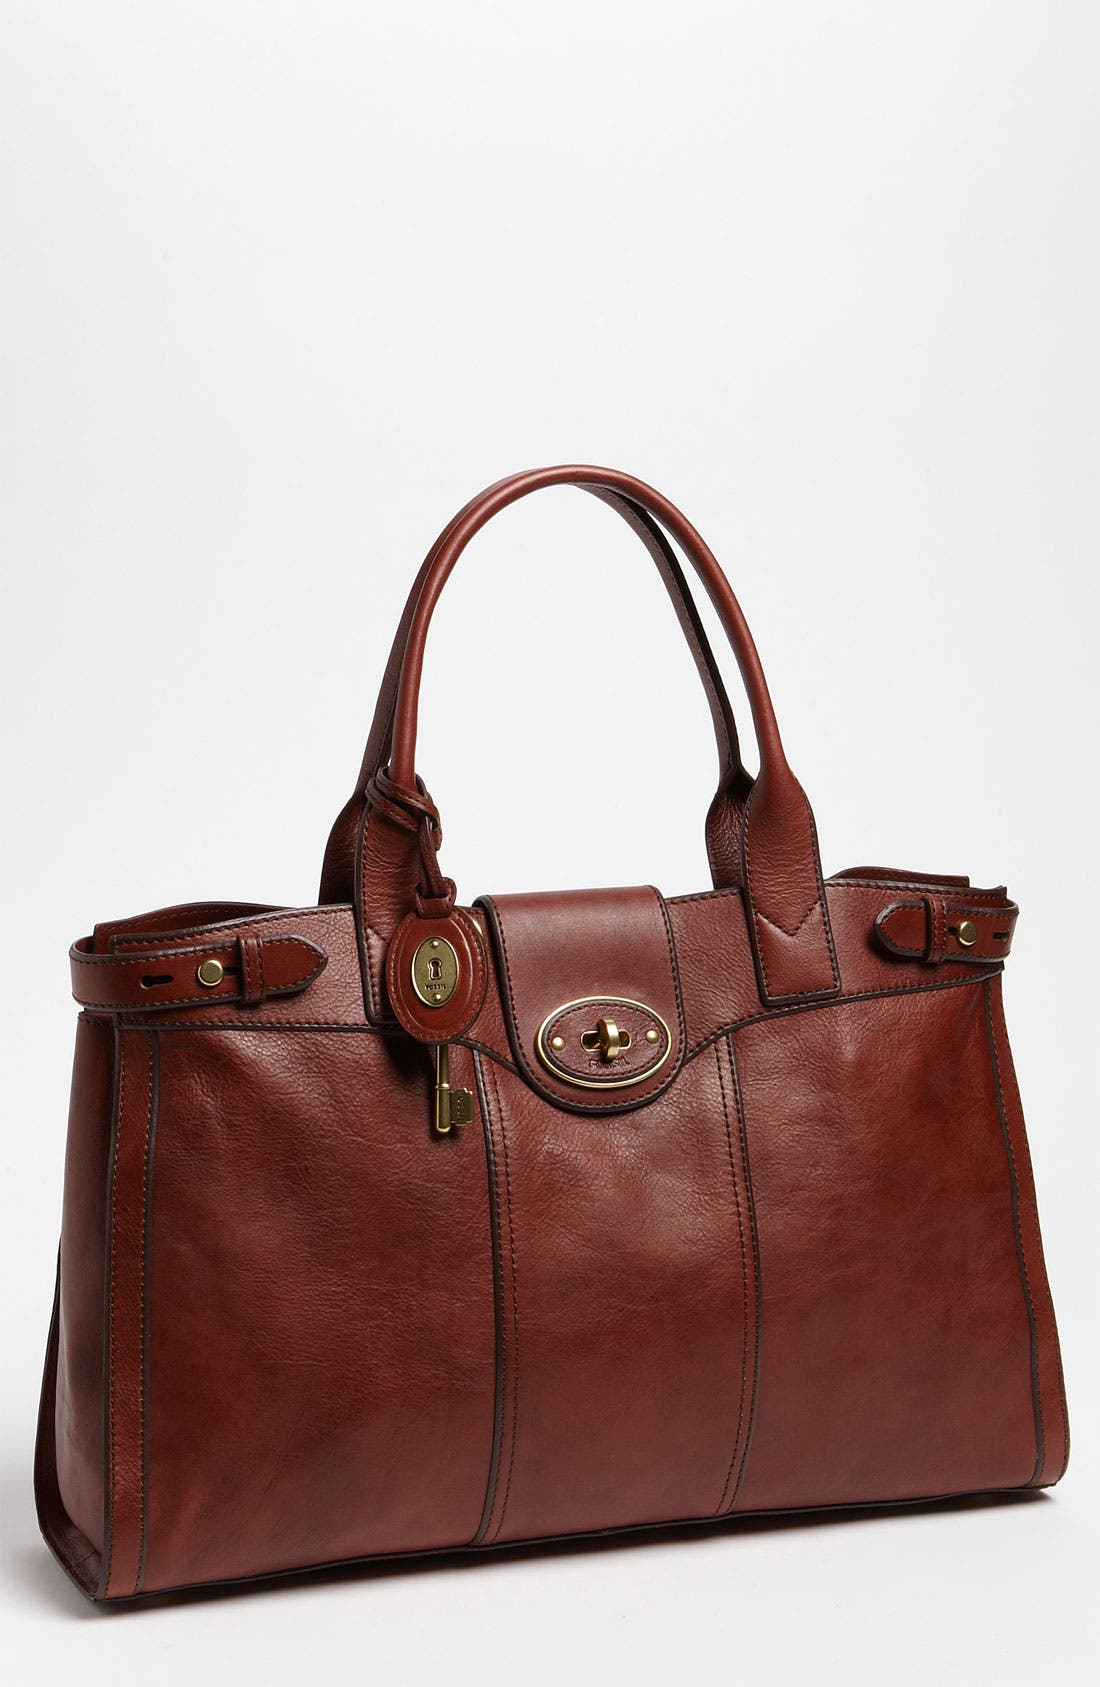 Alternate Image 1 Selected - Fossil 'Vintage Re-Issue' Bag